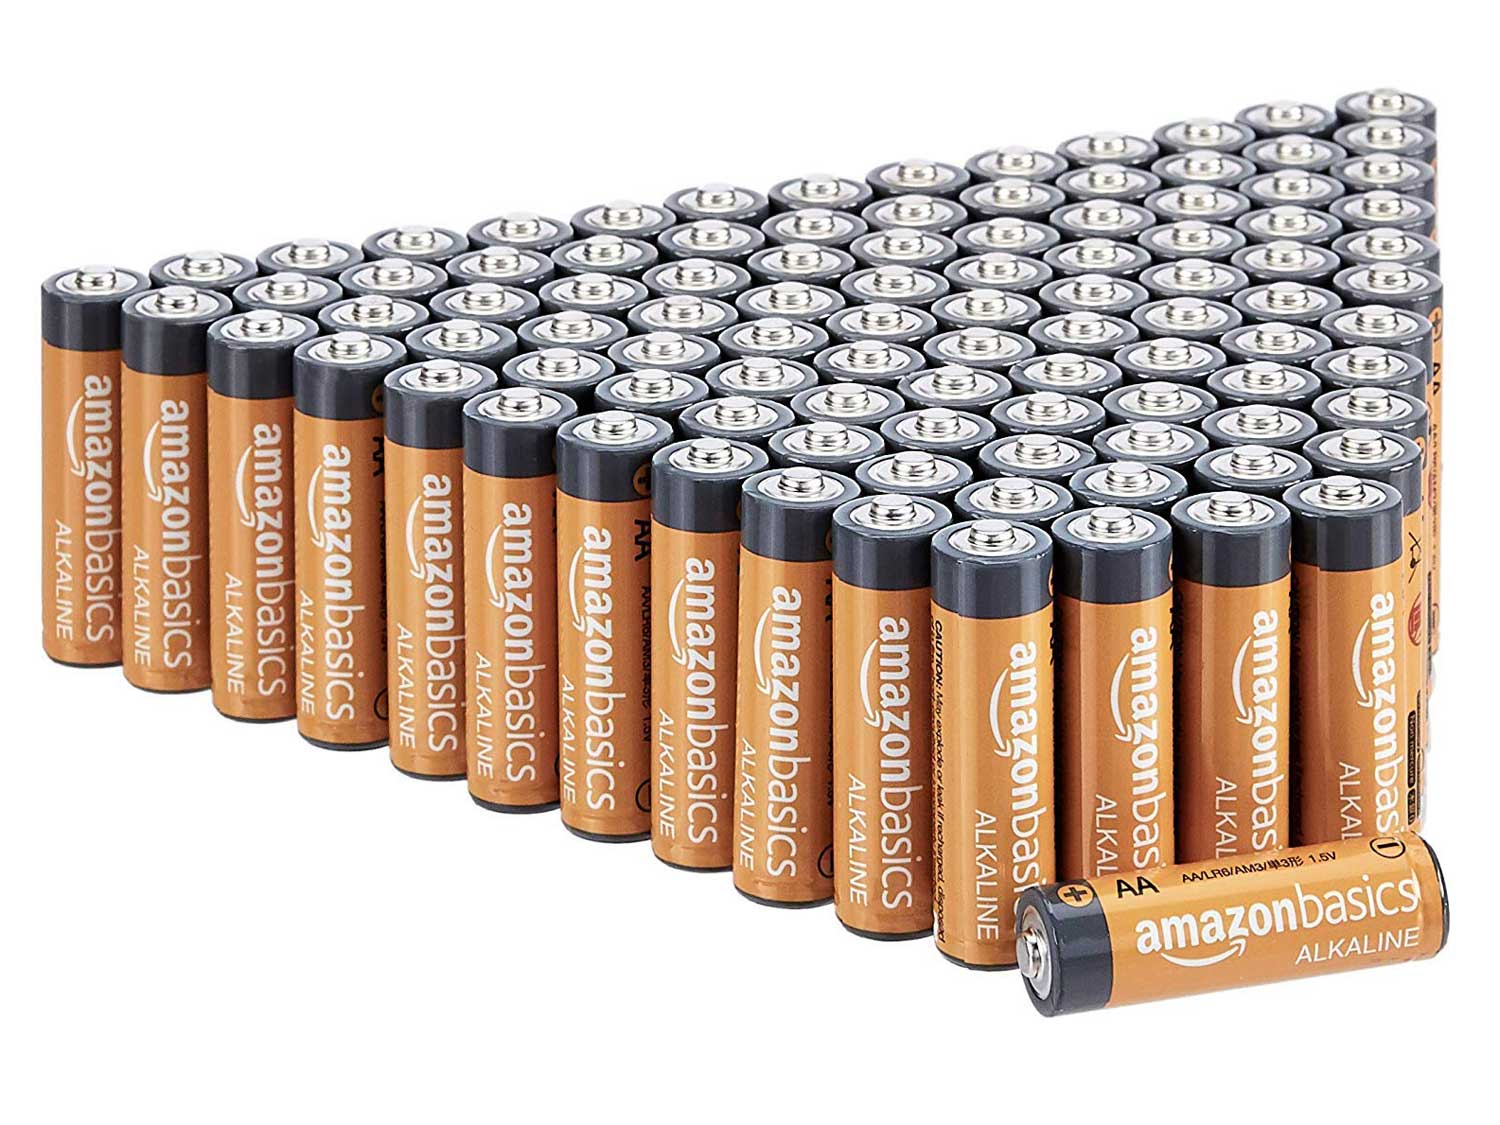 AmazonBasics AA 1.5 Volt Performance Alkaline Batteries